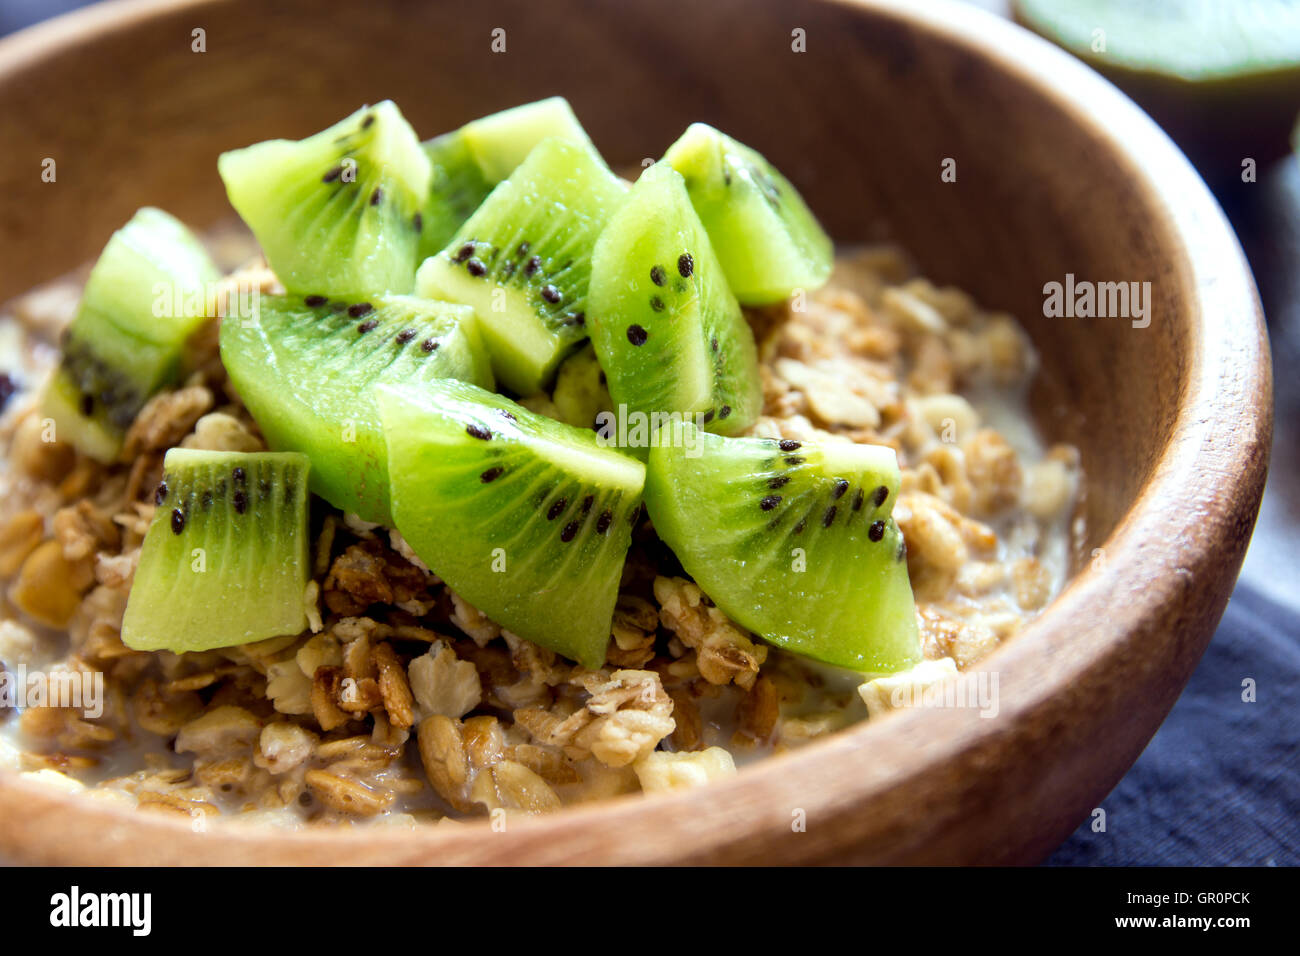 Homemade granola with milk and kiwi for healthy breakfast - Stock Image